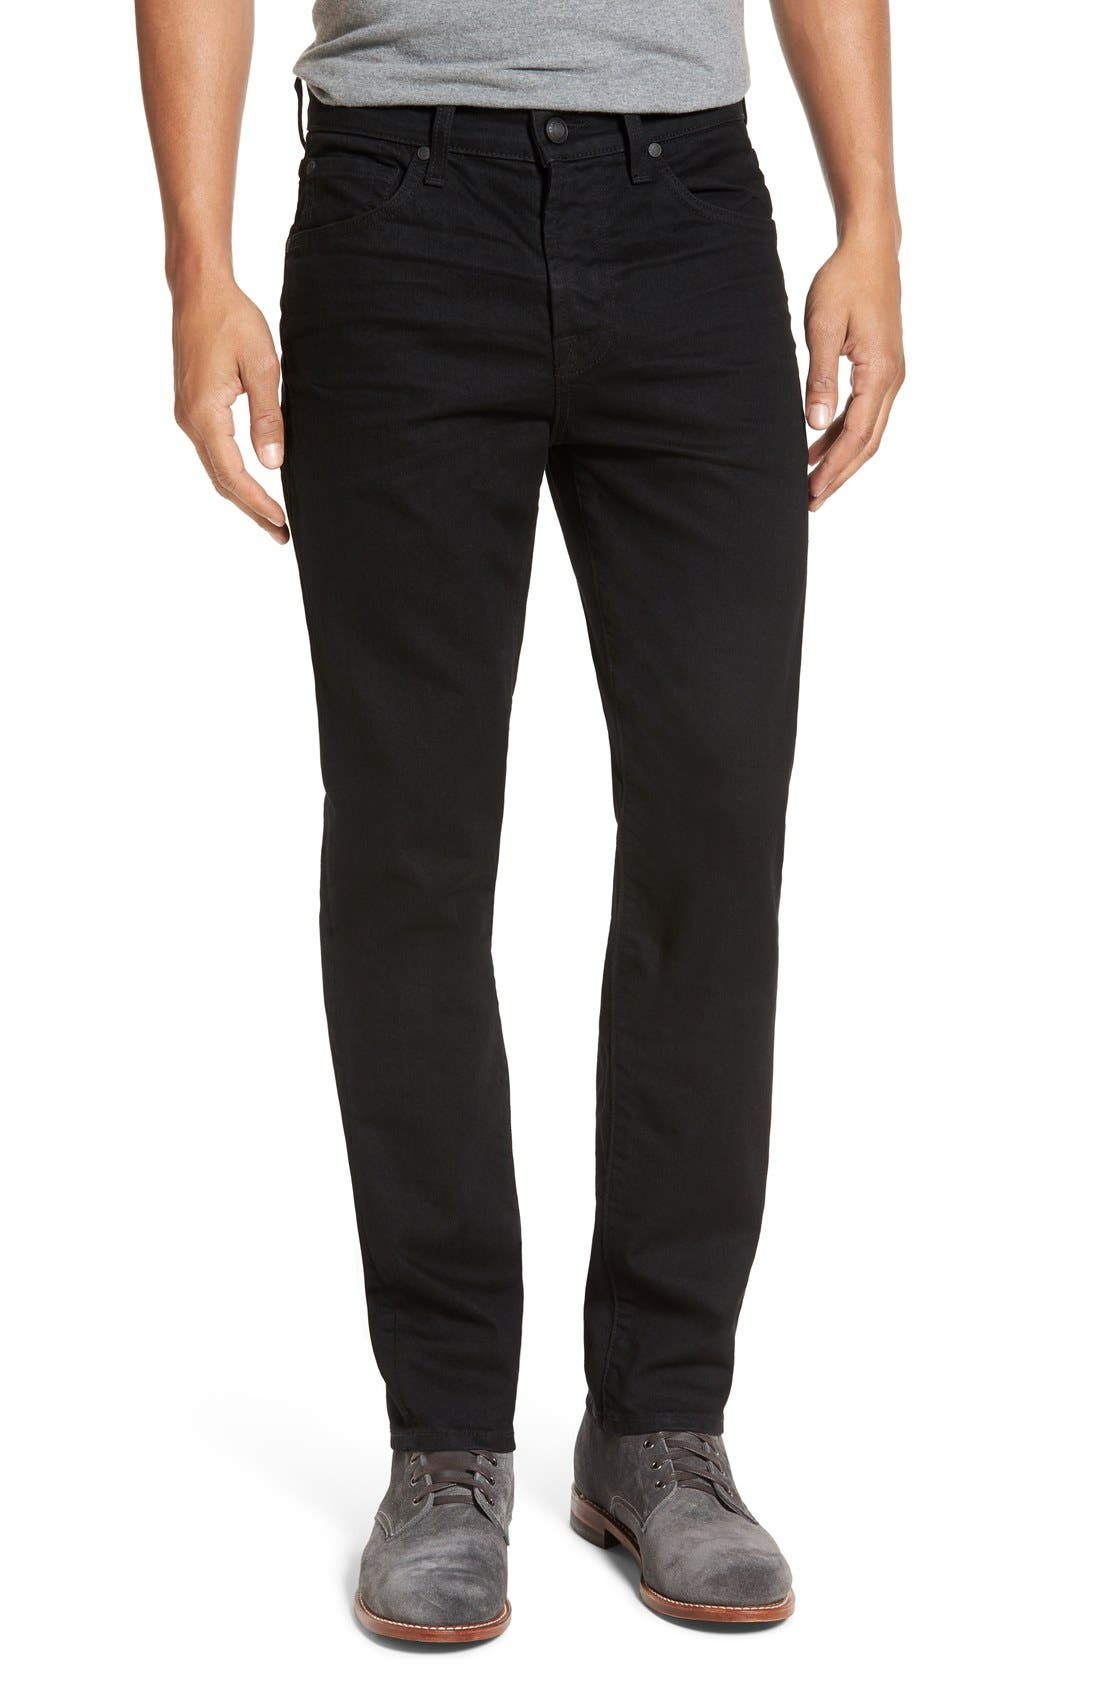 Main Image - 7 For All Mankind® Slimmy Slim Fit Jeans (Towne Black)